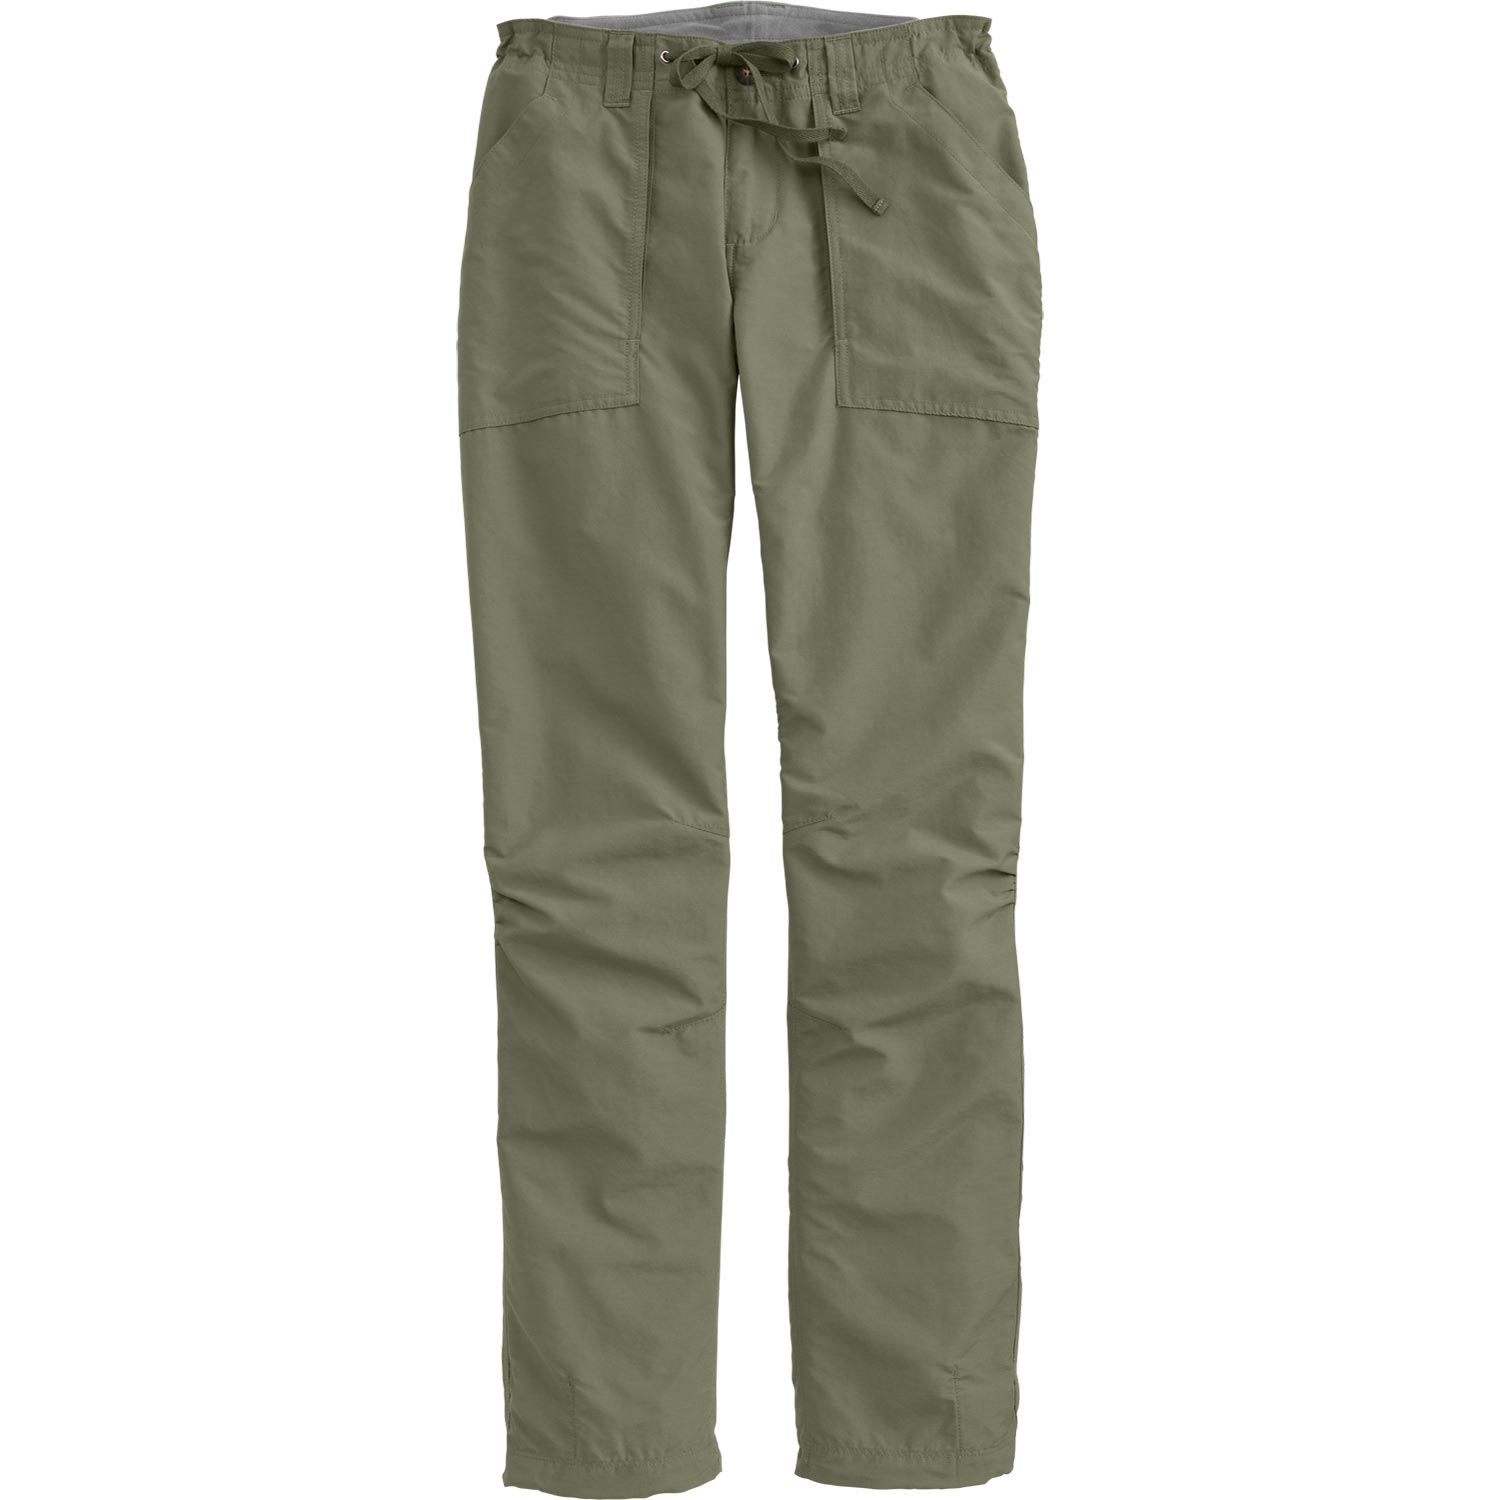 Women S No Fly Zone Insect Repellent Pants Work Pants Women Pants Insect Repellent Clothing